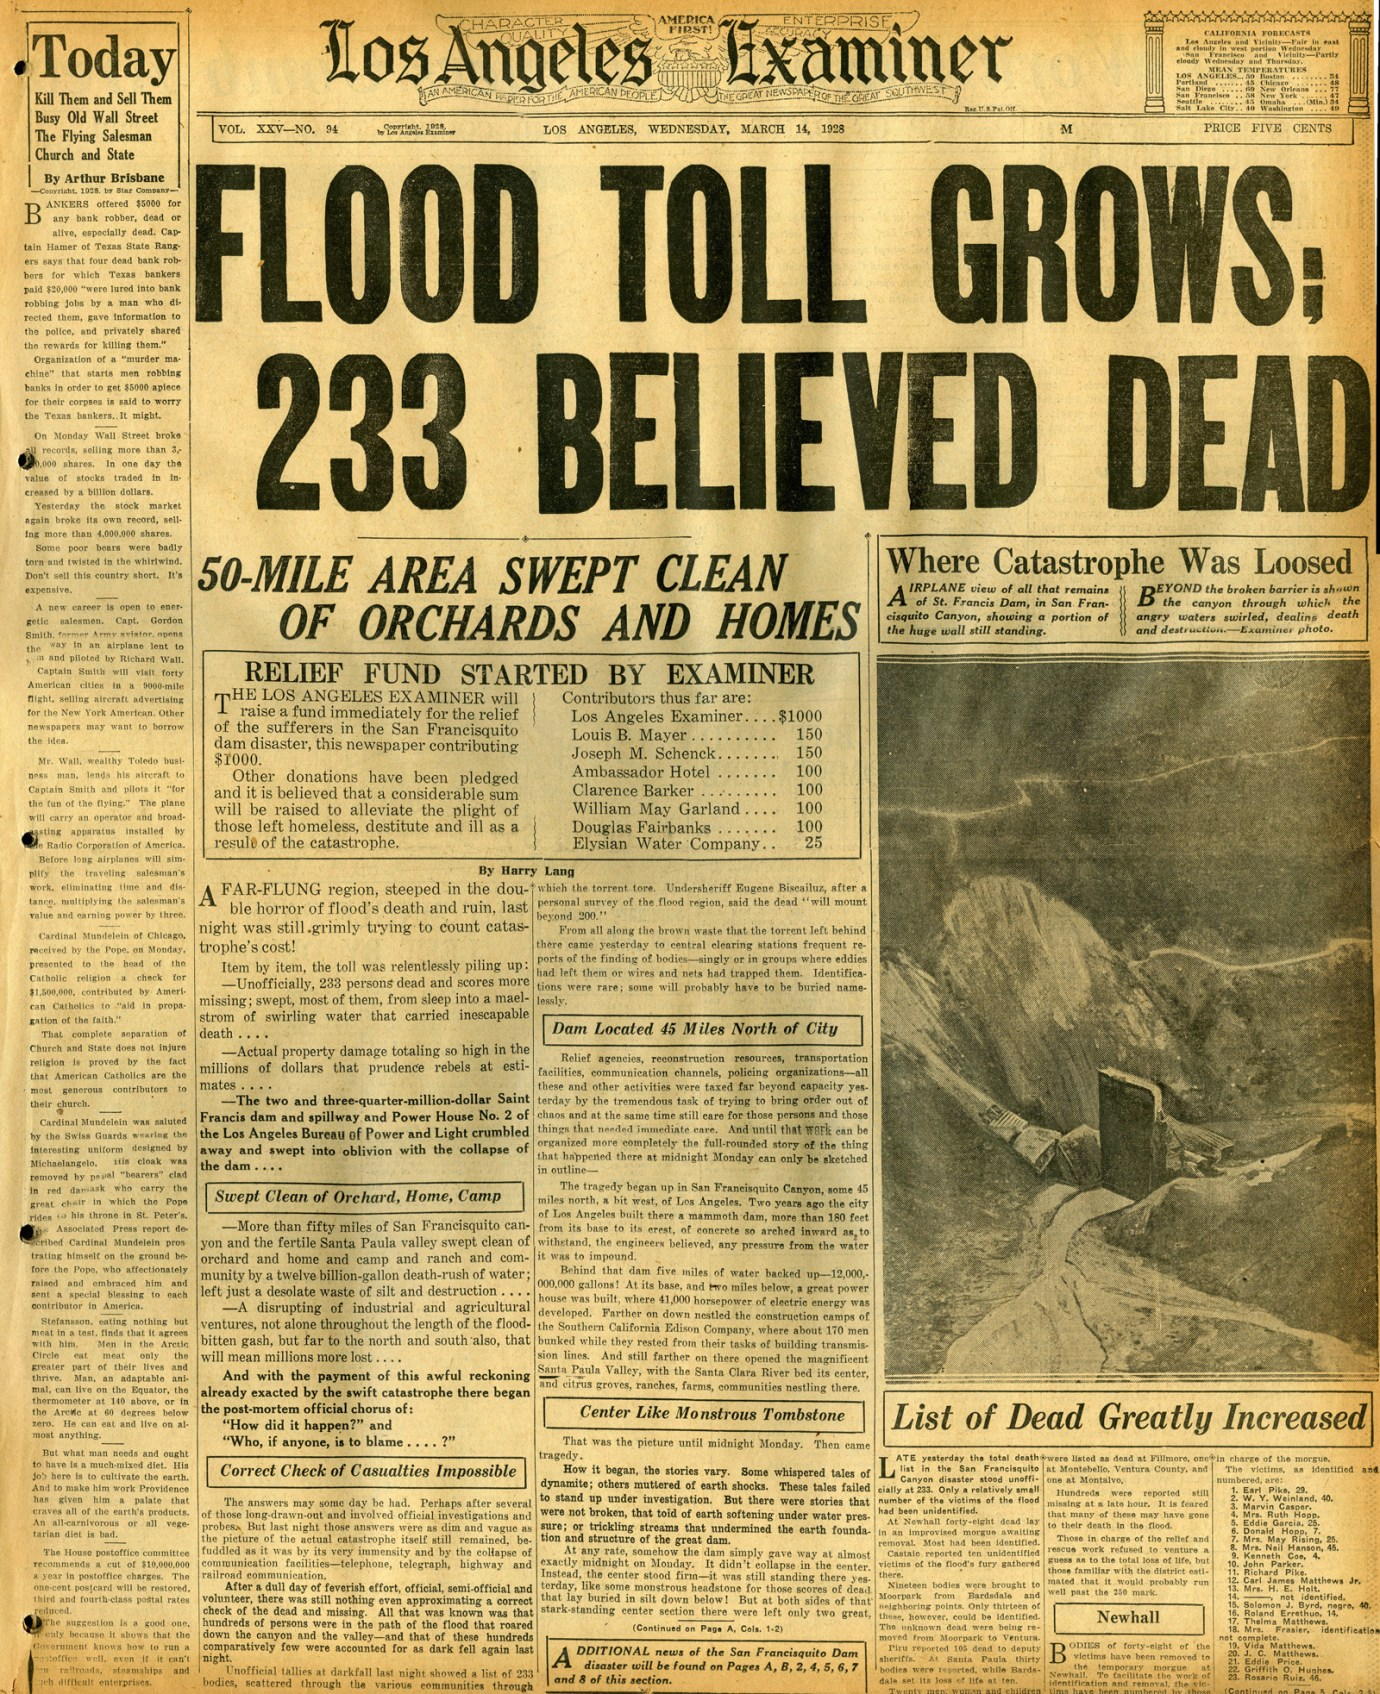 St. Francis Dam Disaster  LOS ANGELES EXAMINER  Los Angeles, California | Wednesday, March 14, 1928